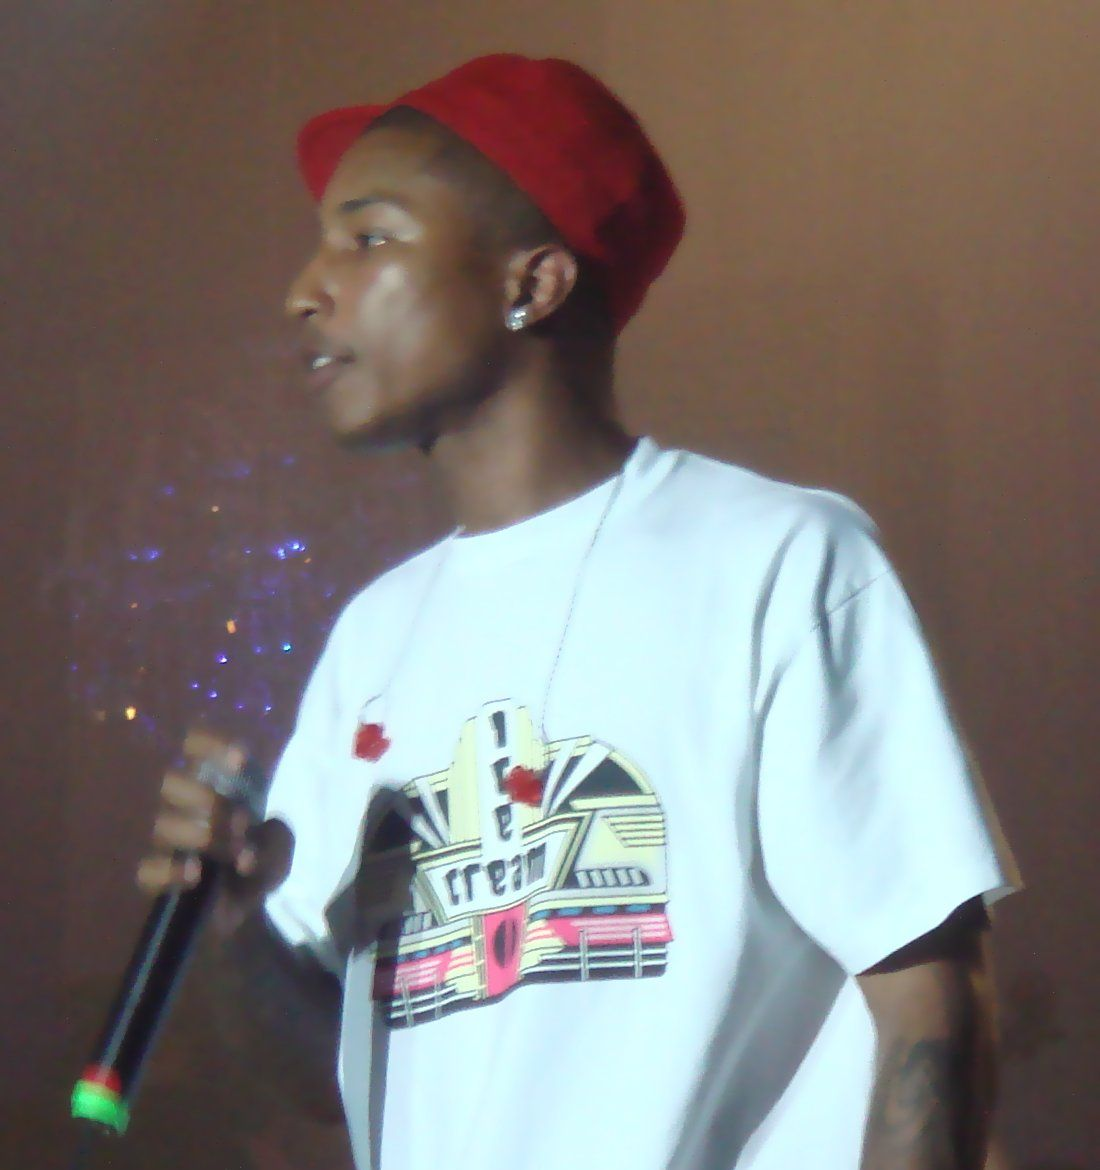 Pharrell Williams production discography - Wikipedia